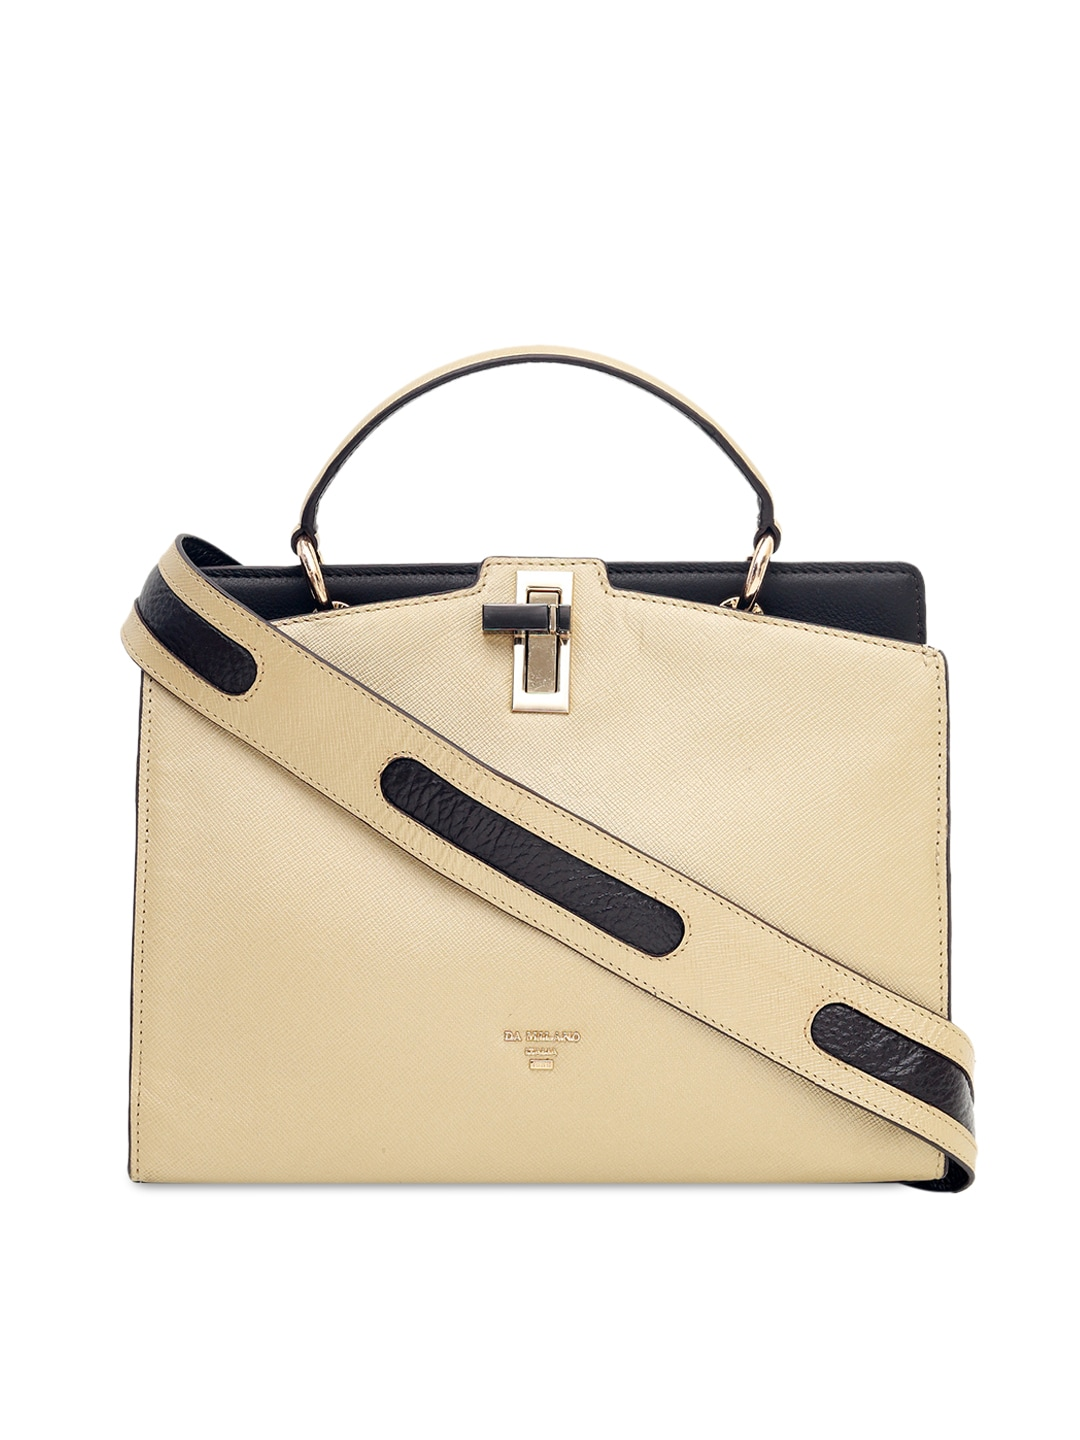 85e4000ed Womens Accessories - Buy Womens Accessories online in India